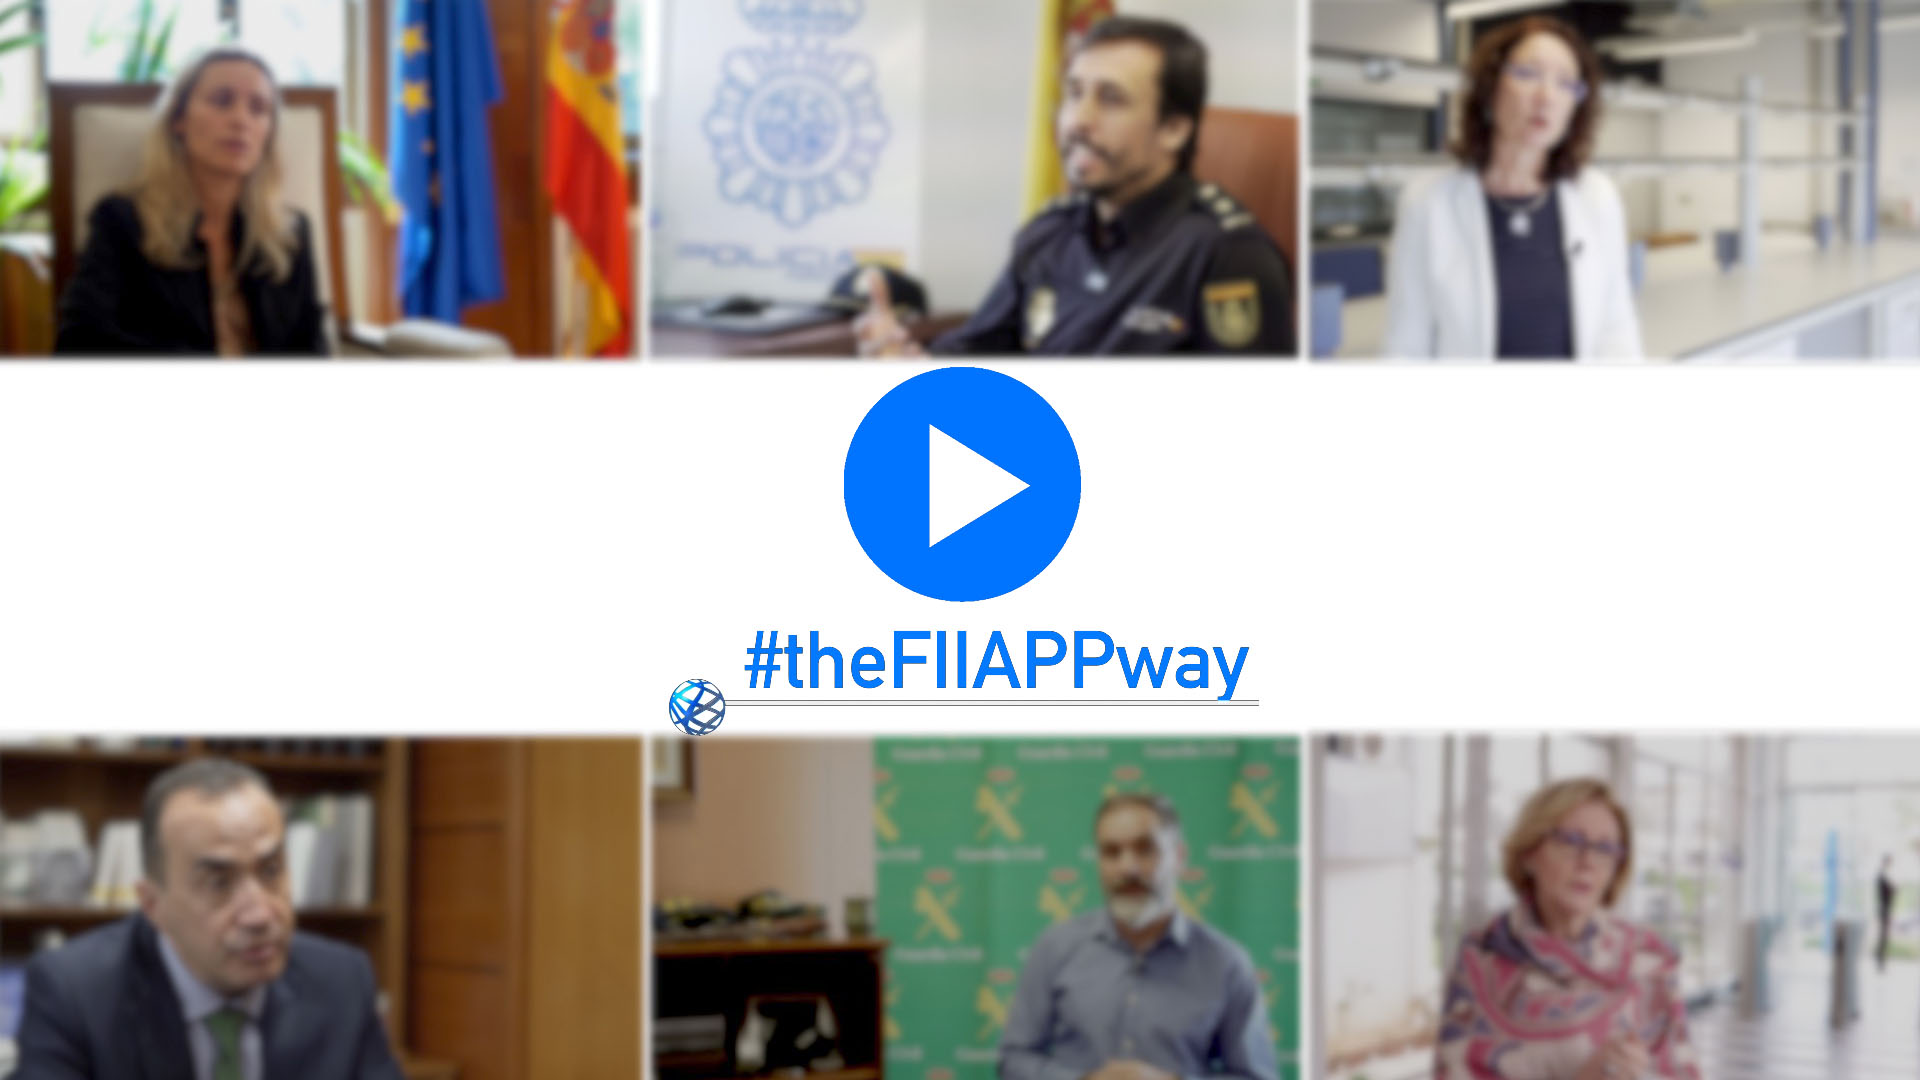 FIIAPP works with public institutions in undertaking international cooperation projects. Representatives of institutions tell us about the organisation.